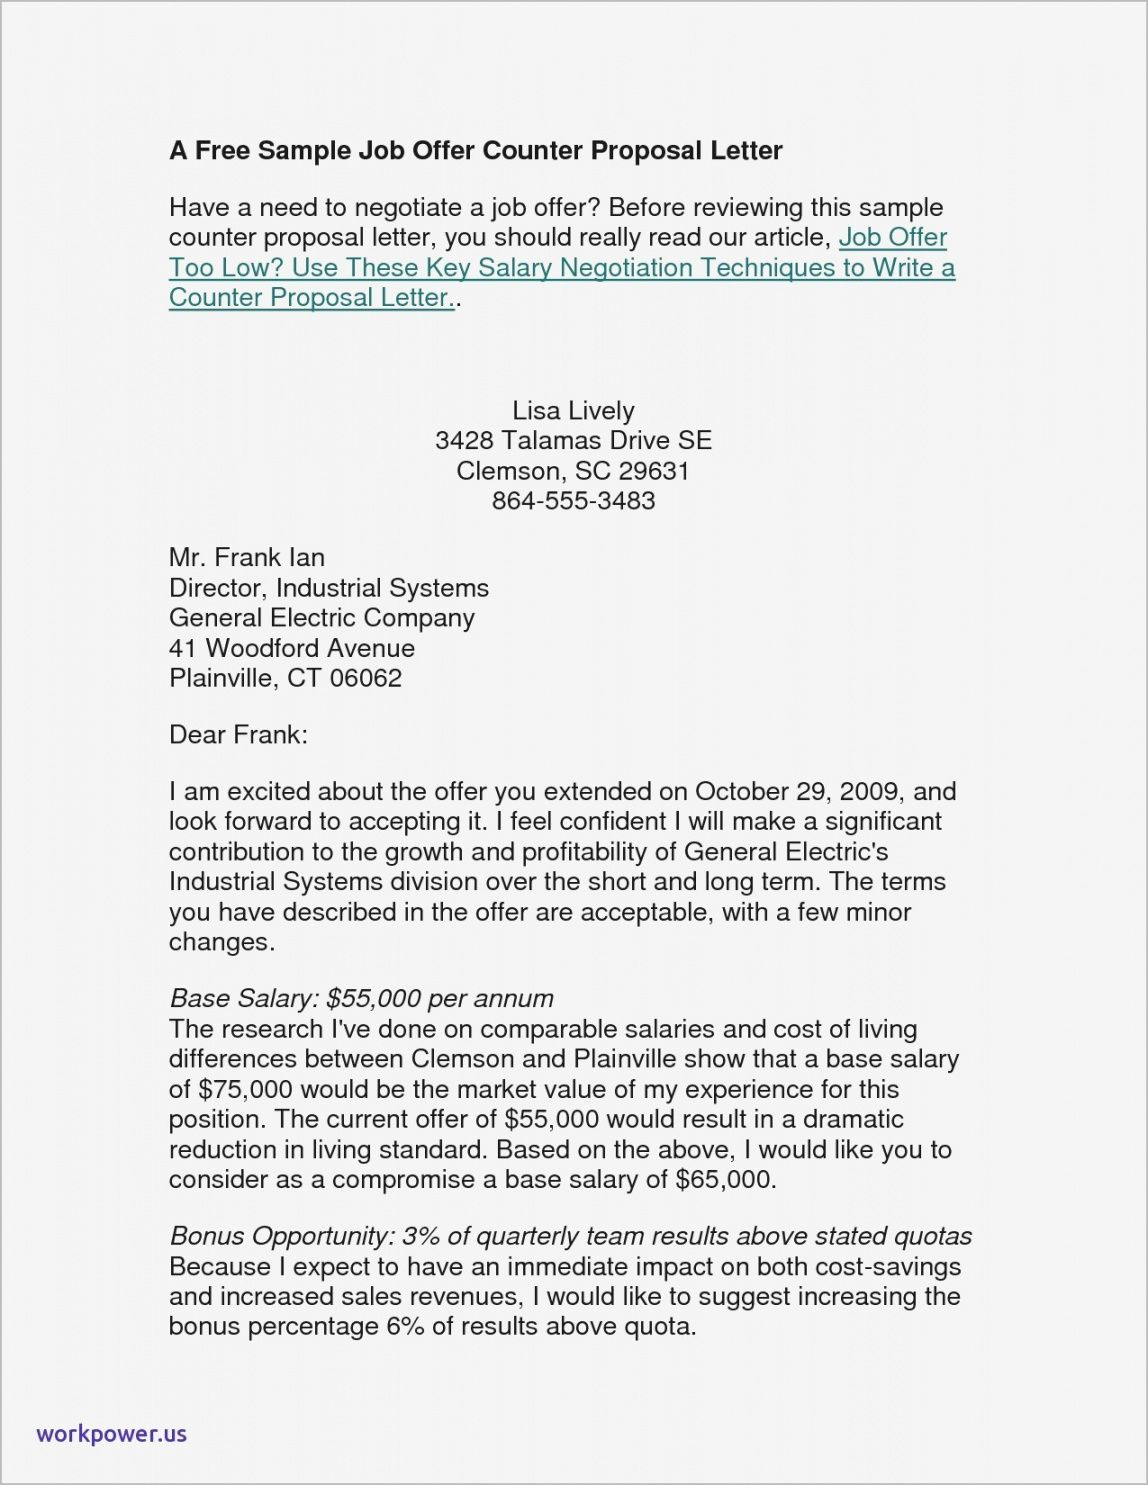 Best Employment Counter Offer Letter Template Word Example